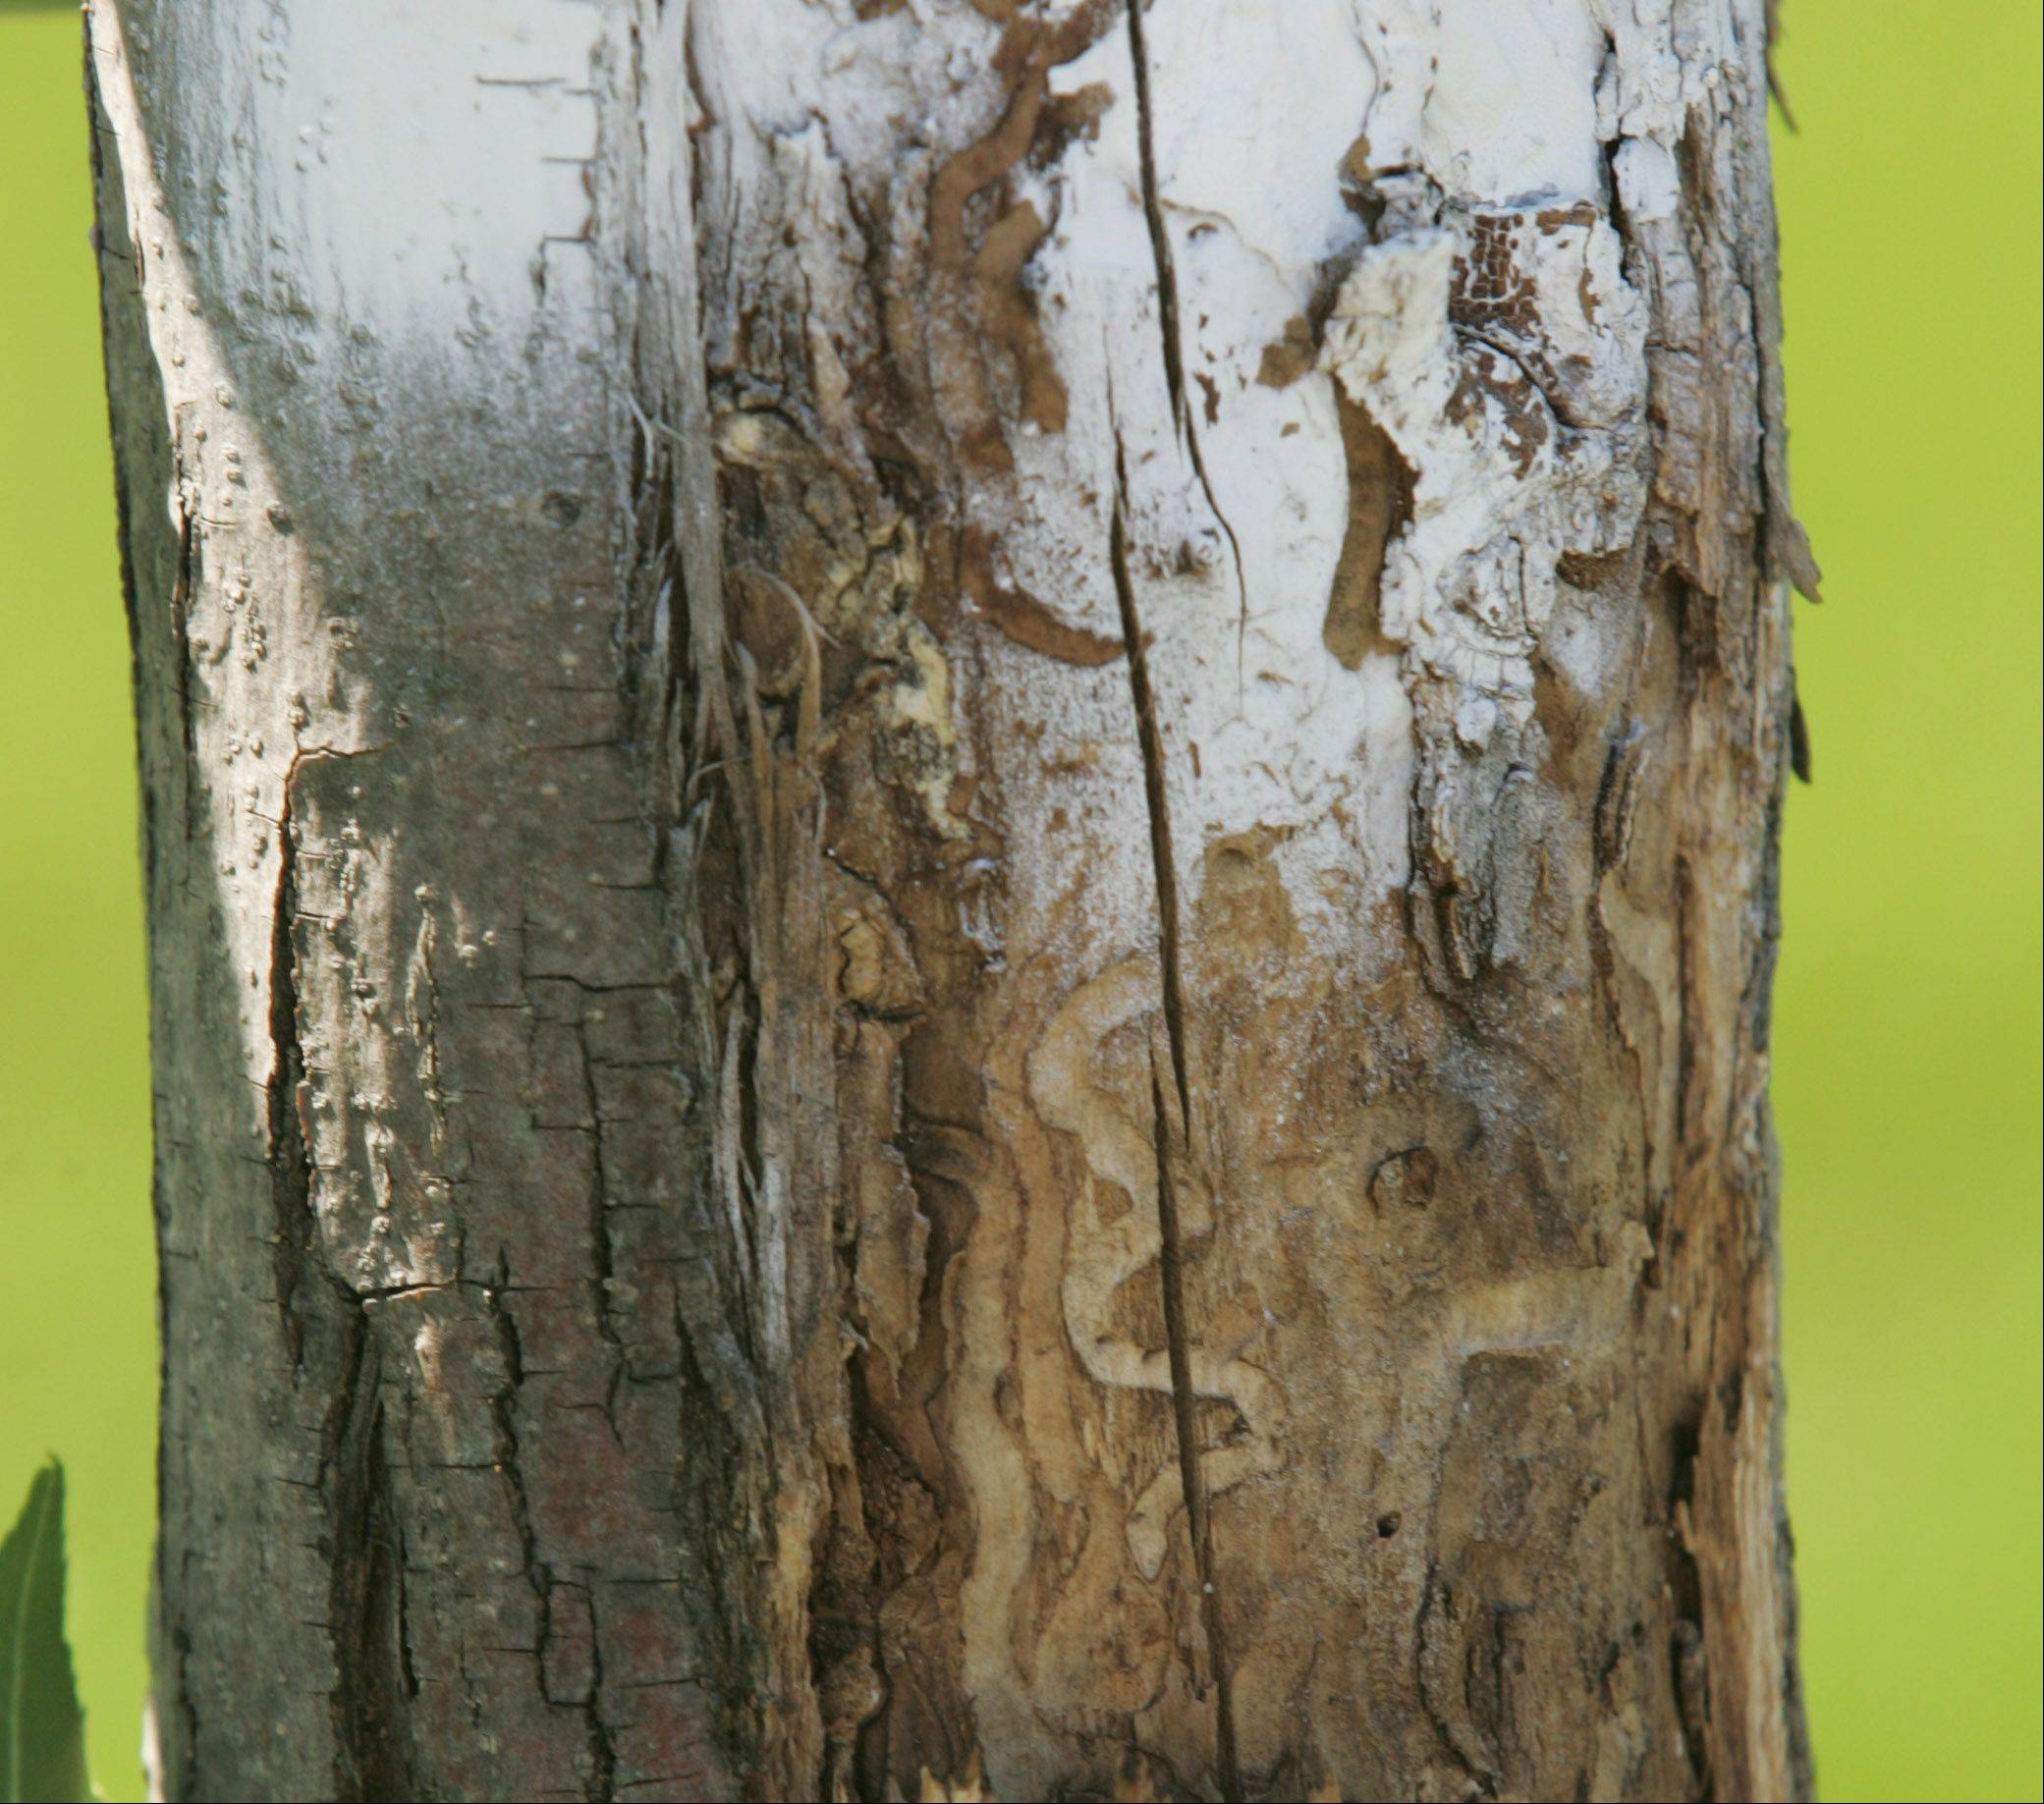 The emerald ash borer has made its way to Carpentersville, infecting several trees along Alexandria Lane on the west side of the village.